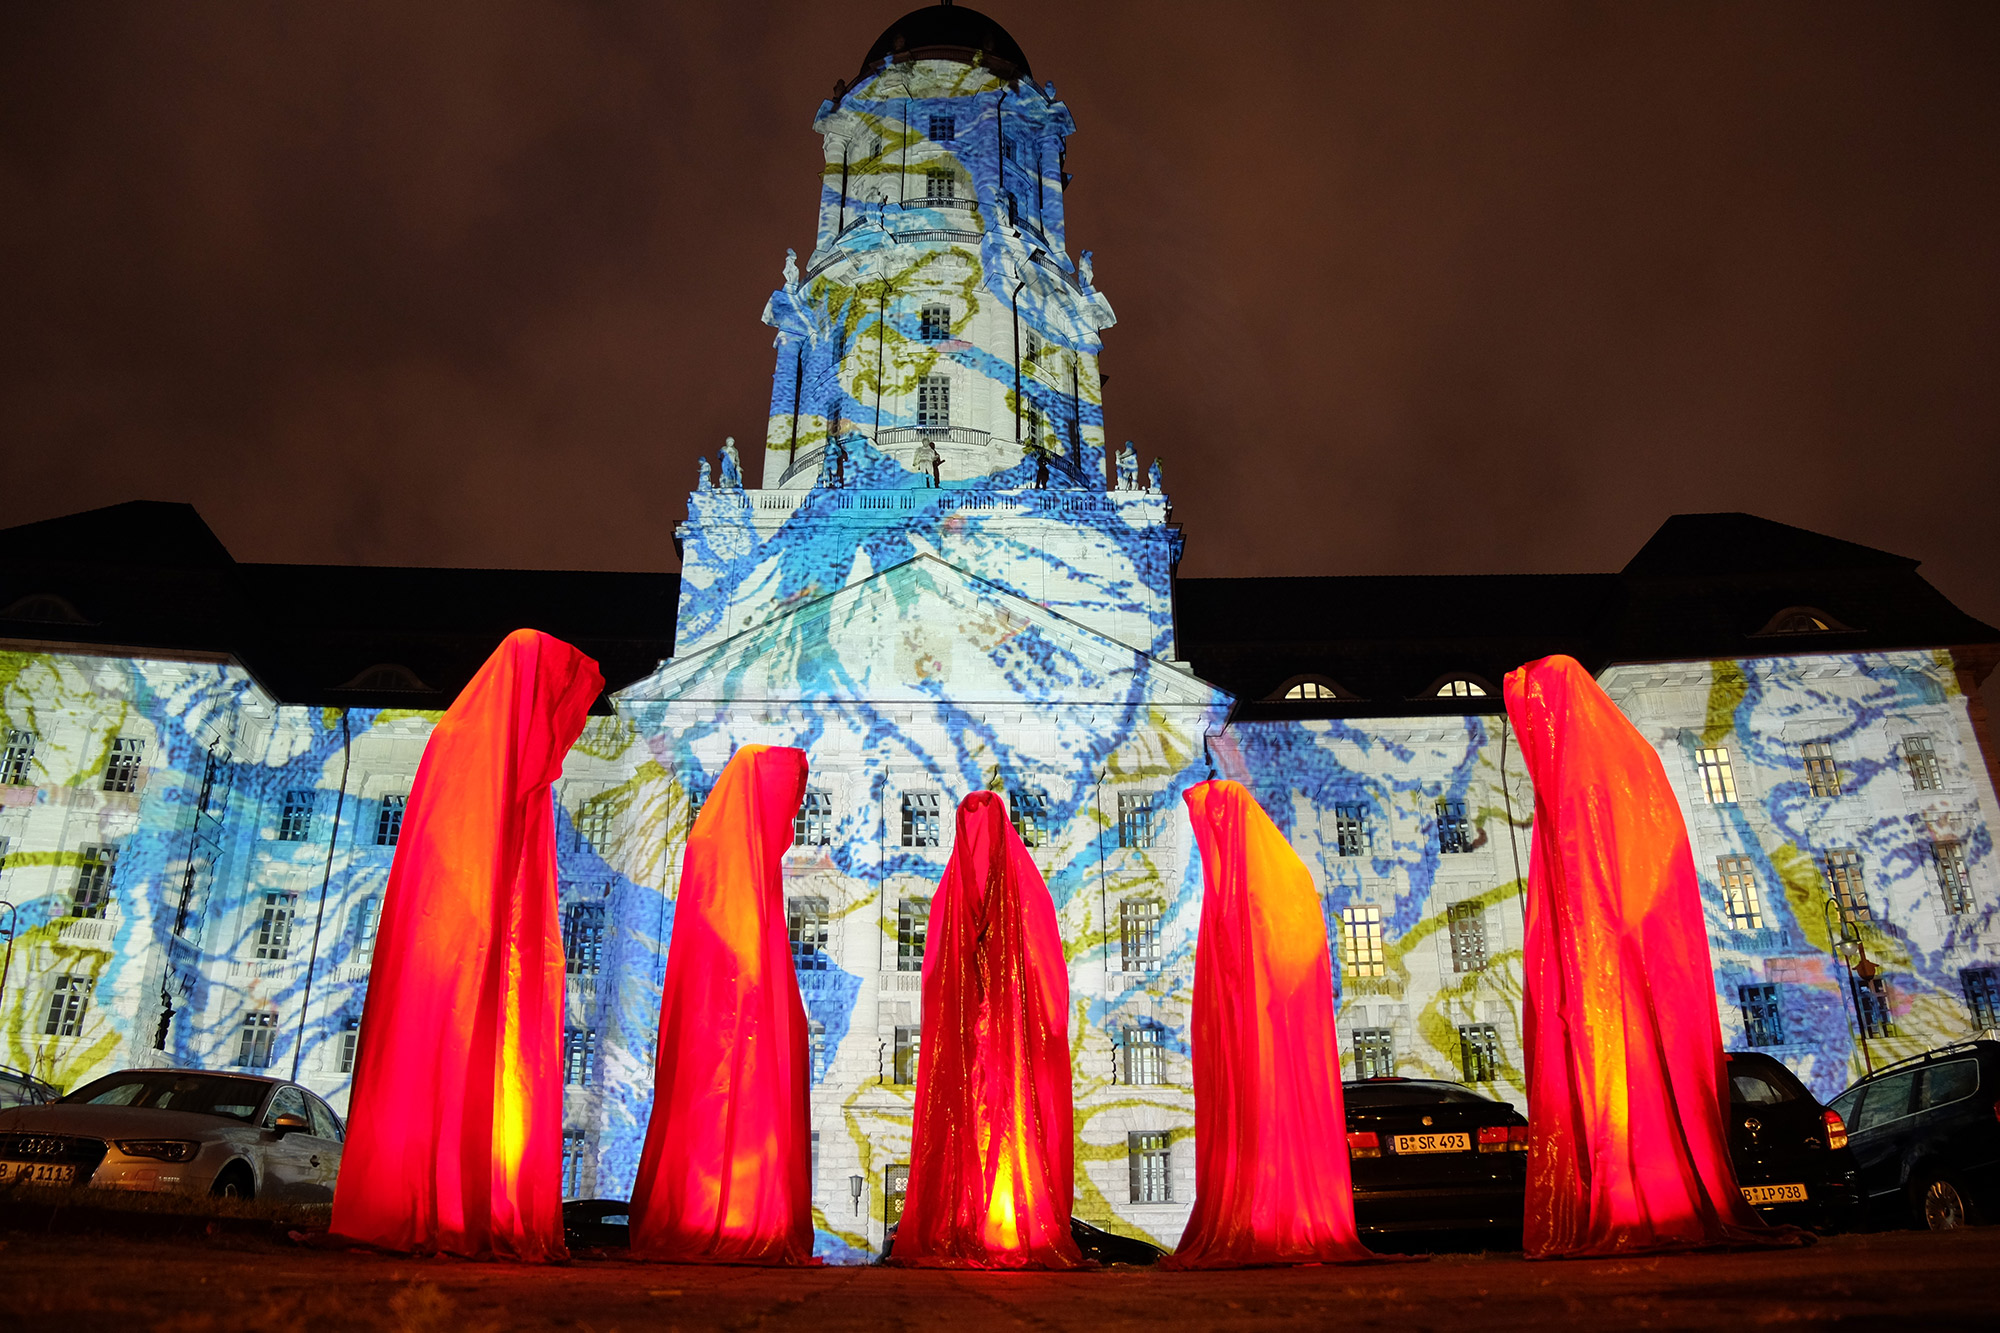 festival-of-lights-berlin-guardians-of-time-manfred-kielnhofer-lumina-light-contemporary-art-design-statue-sculpture-fineart-ghost-faceless-no-face-9236